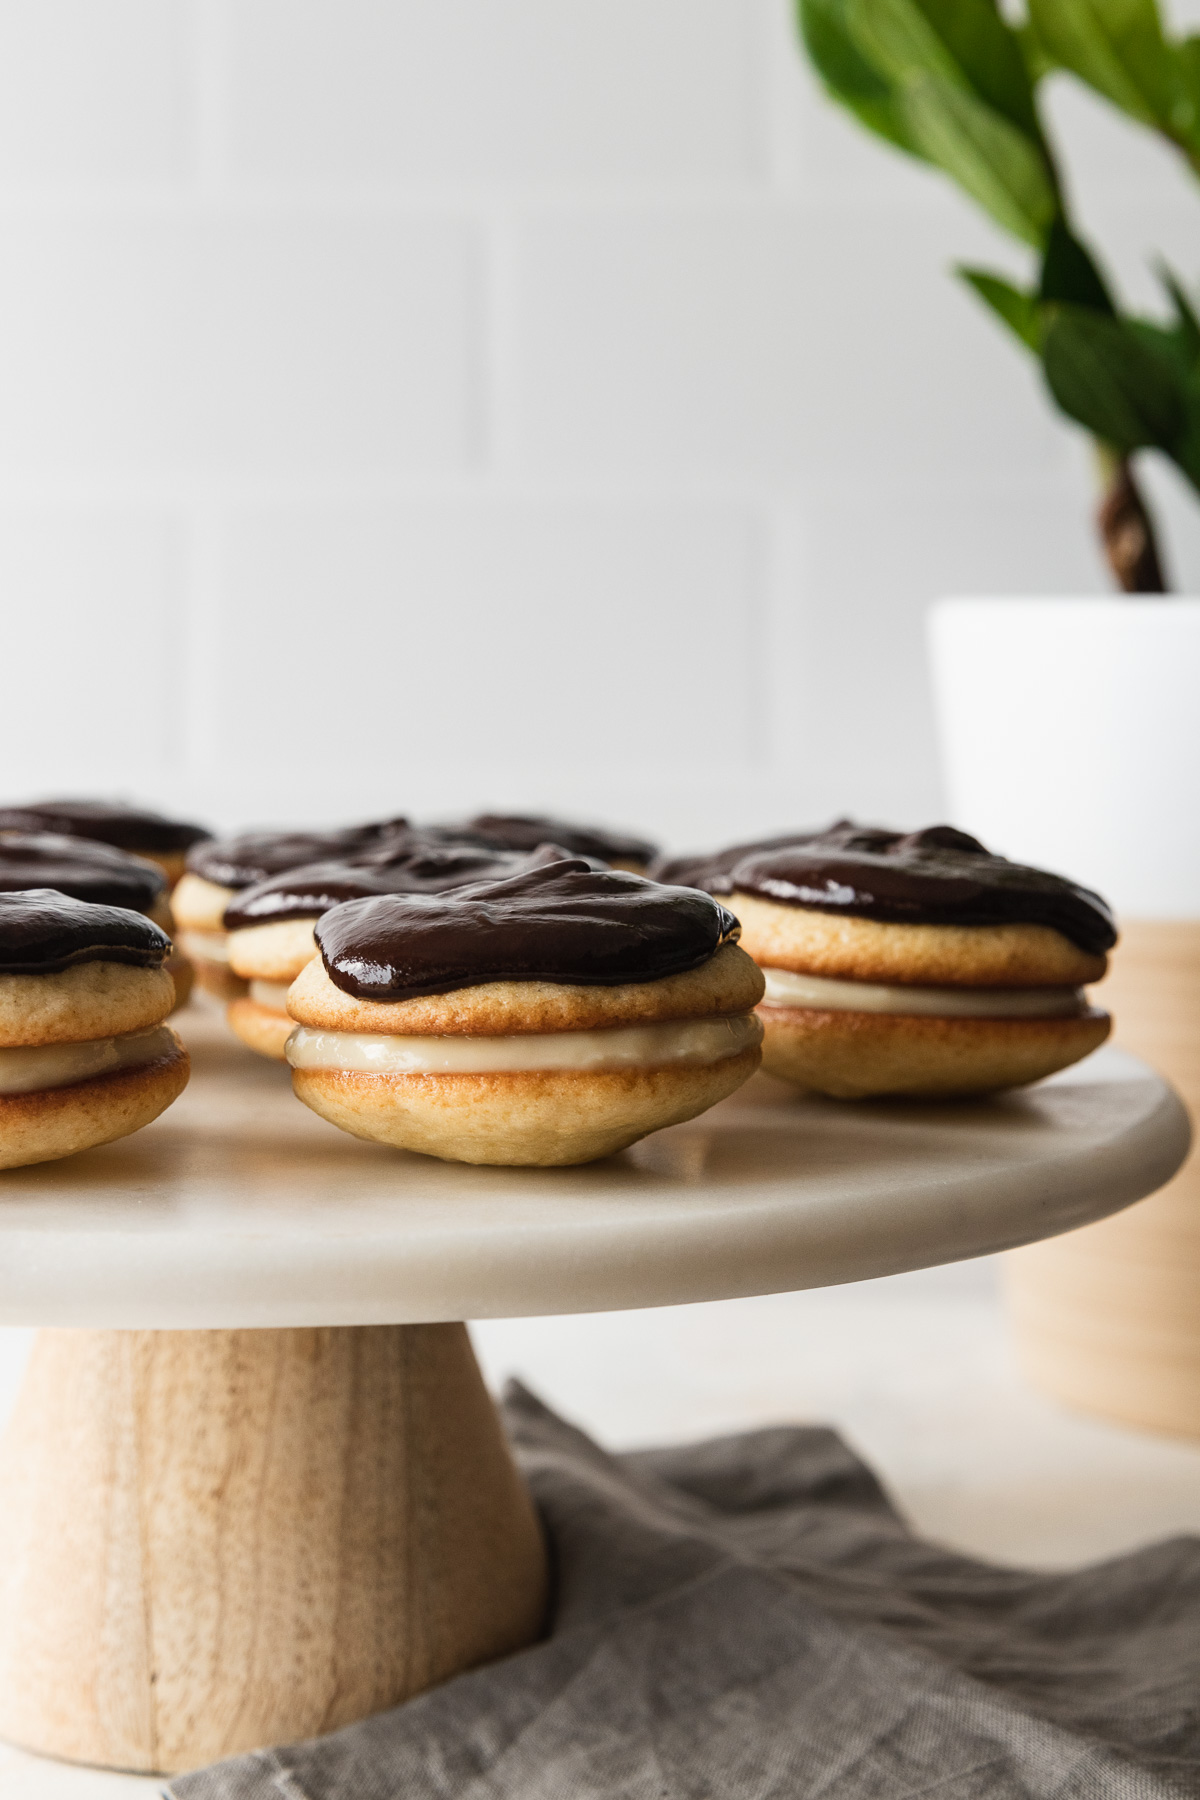 boston cream whoopie pies on a cake stand